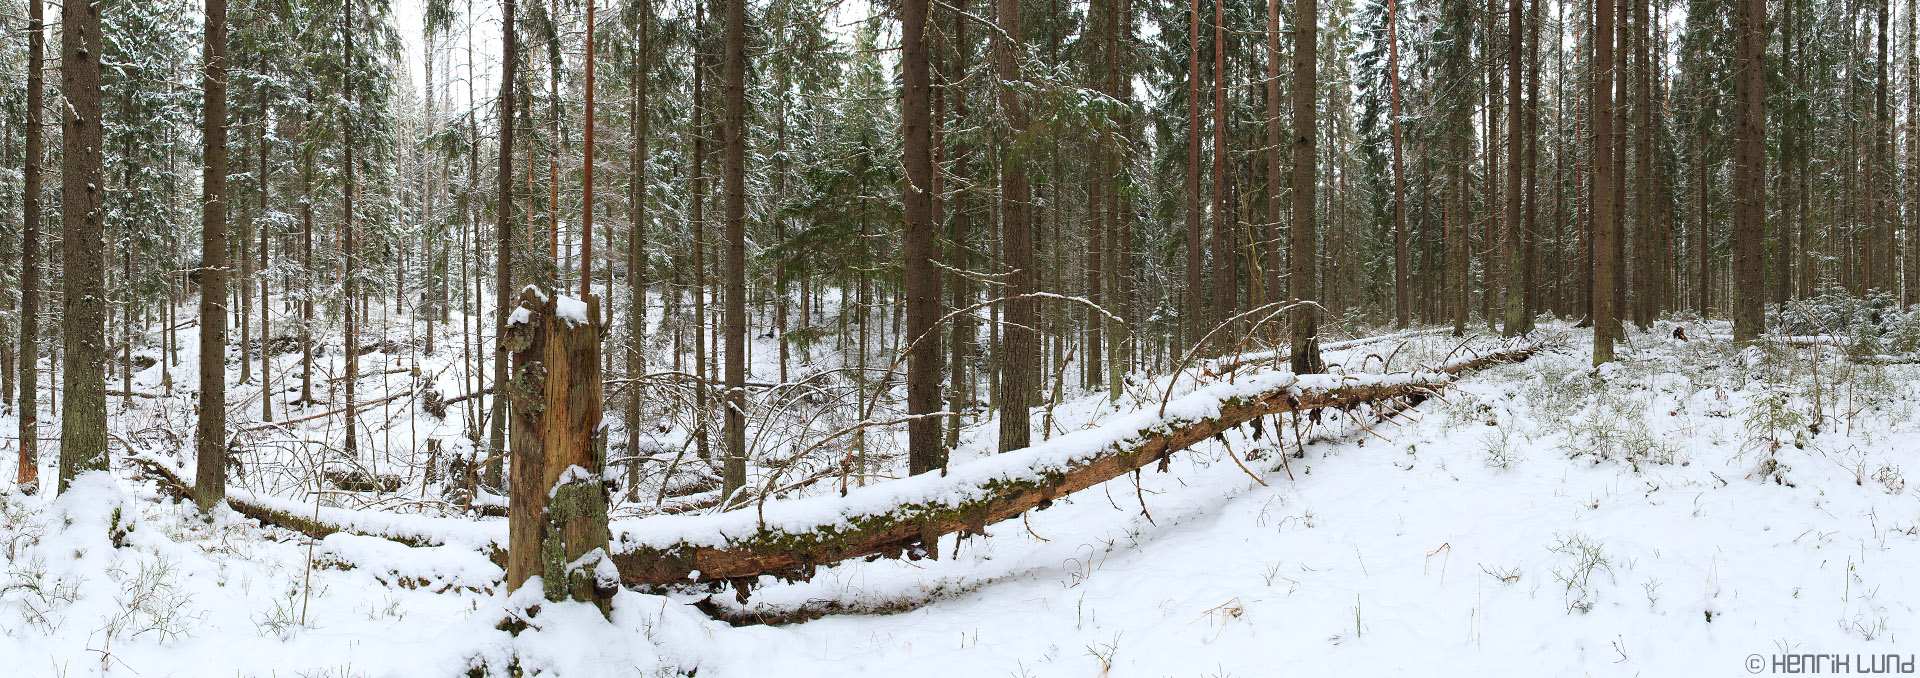 Panorama of a natural forest in last fresh snowcover in march 2014. Lappträsk, Finland